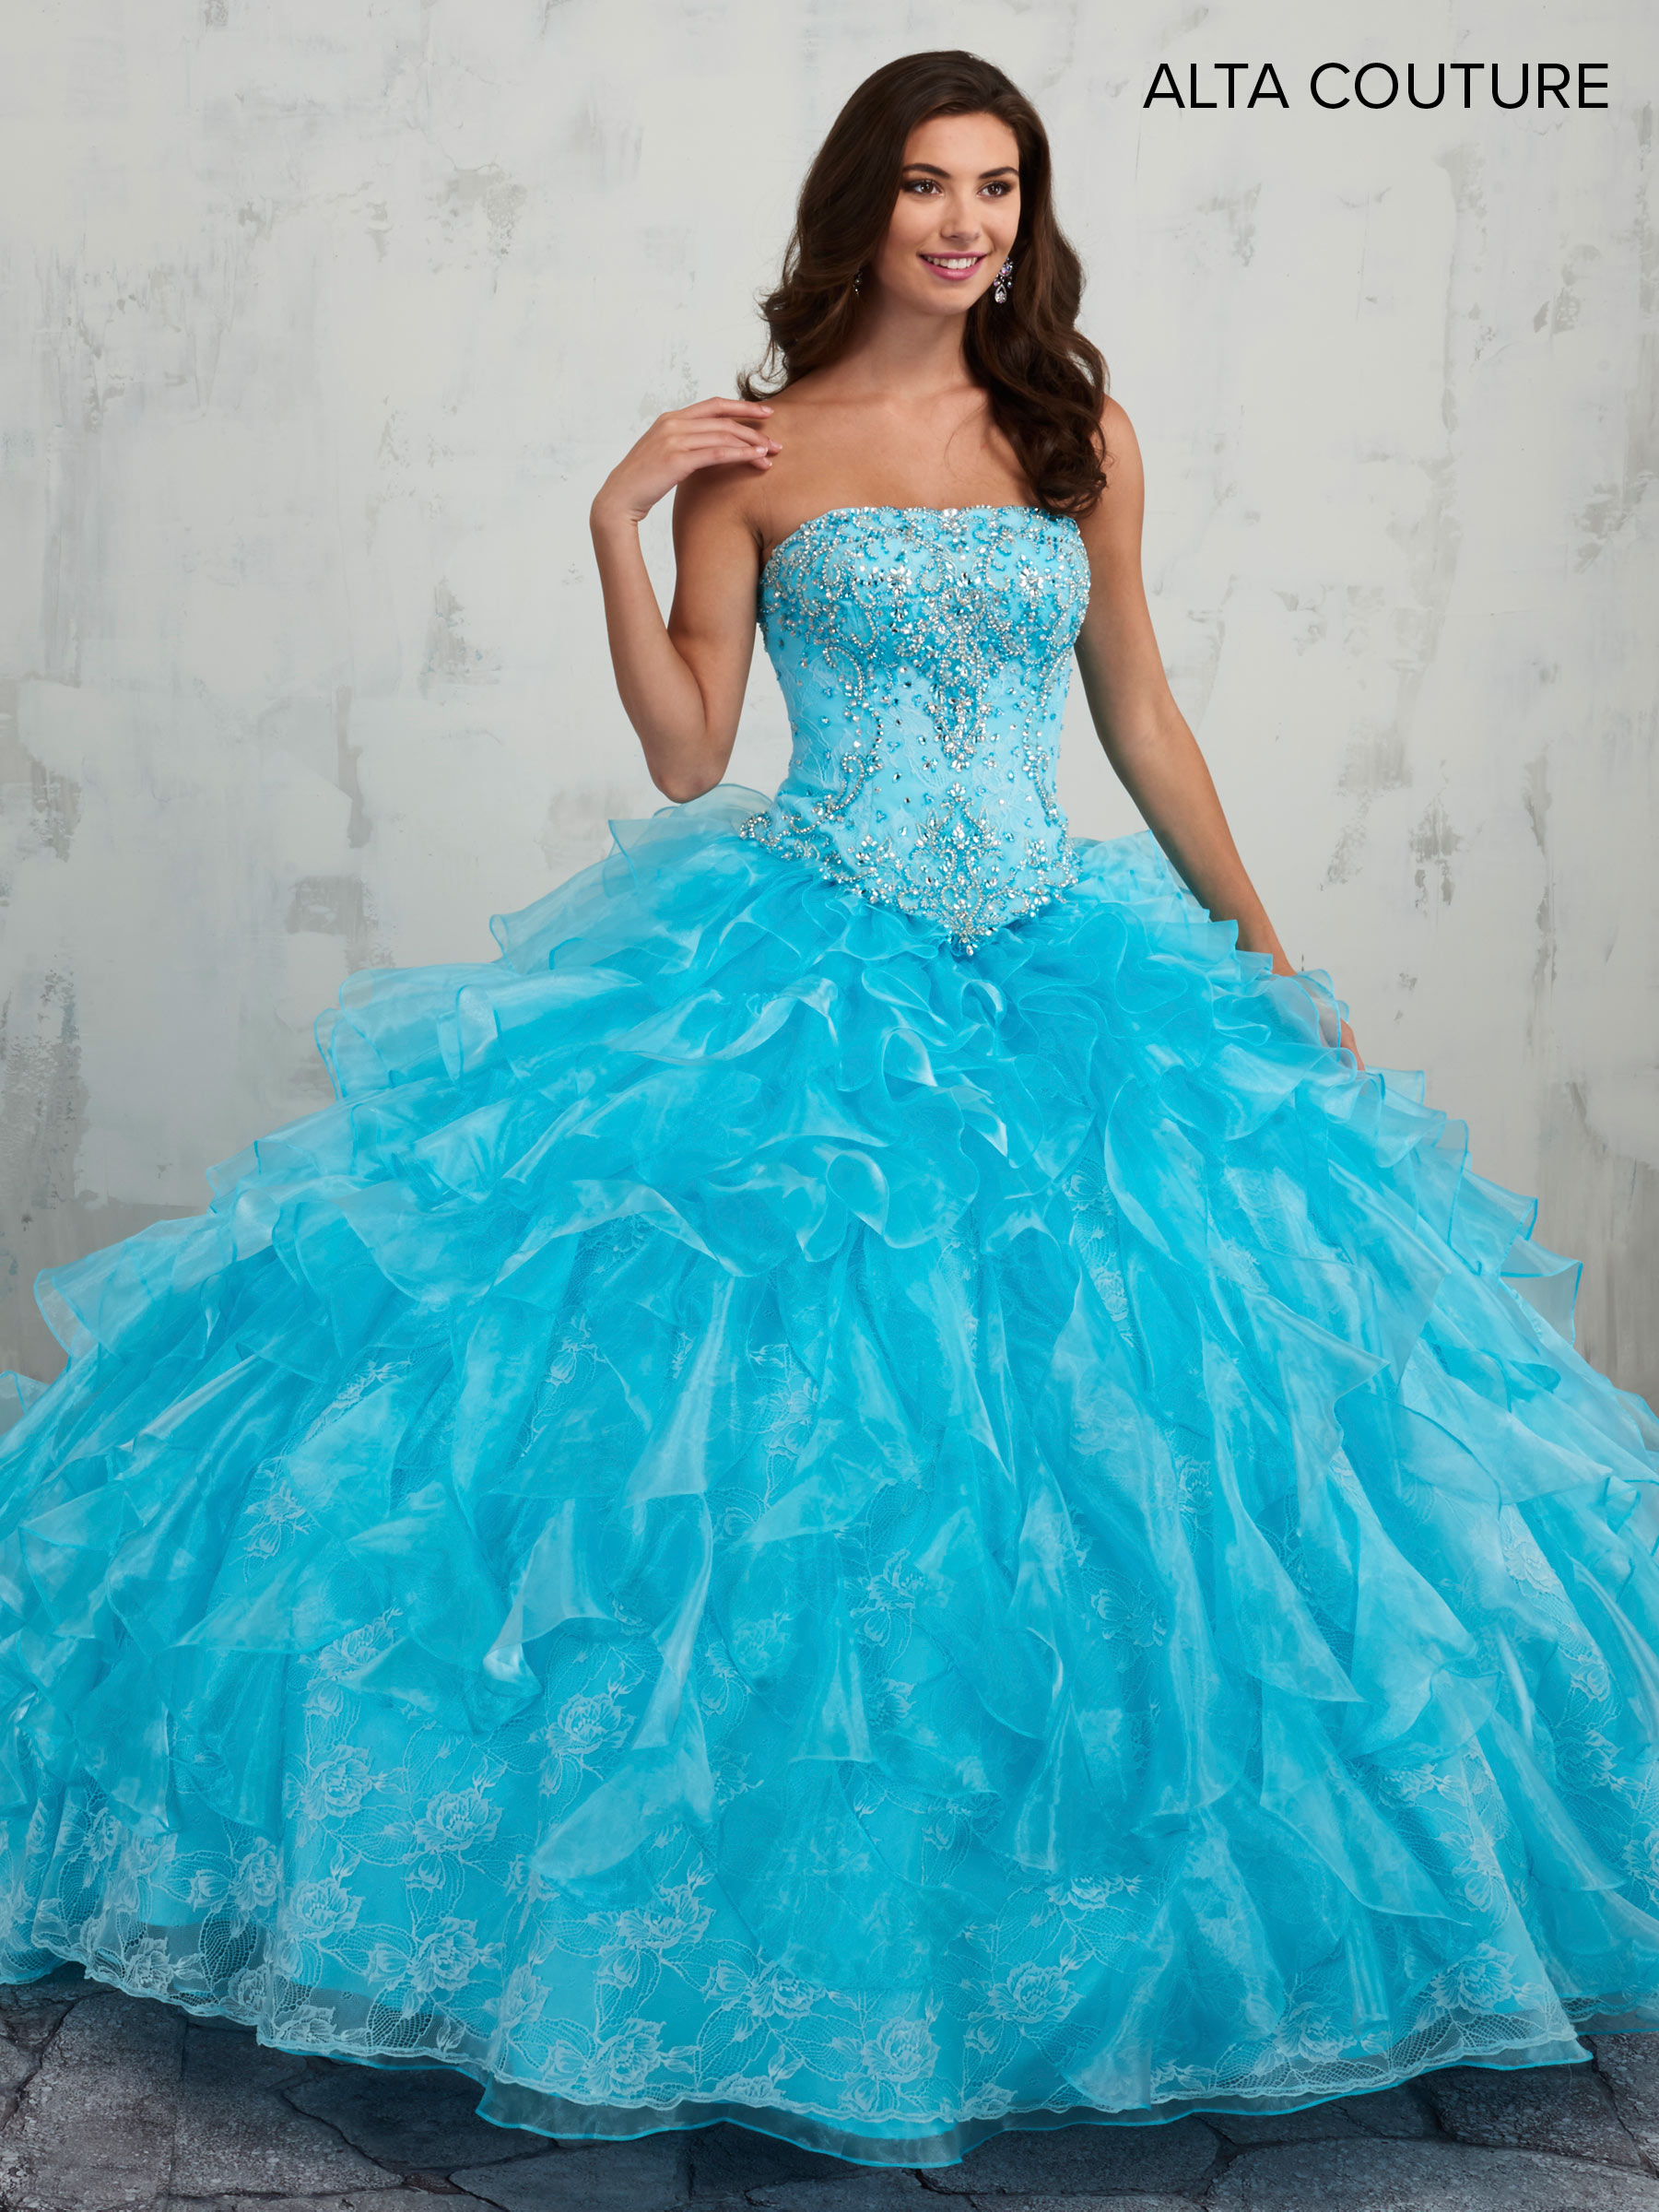 Quinceanera Couture Dresses | Alta Couture | Style - MQ3006